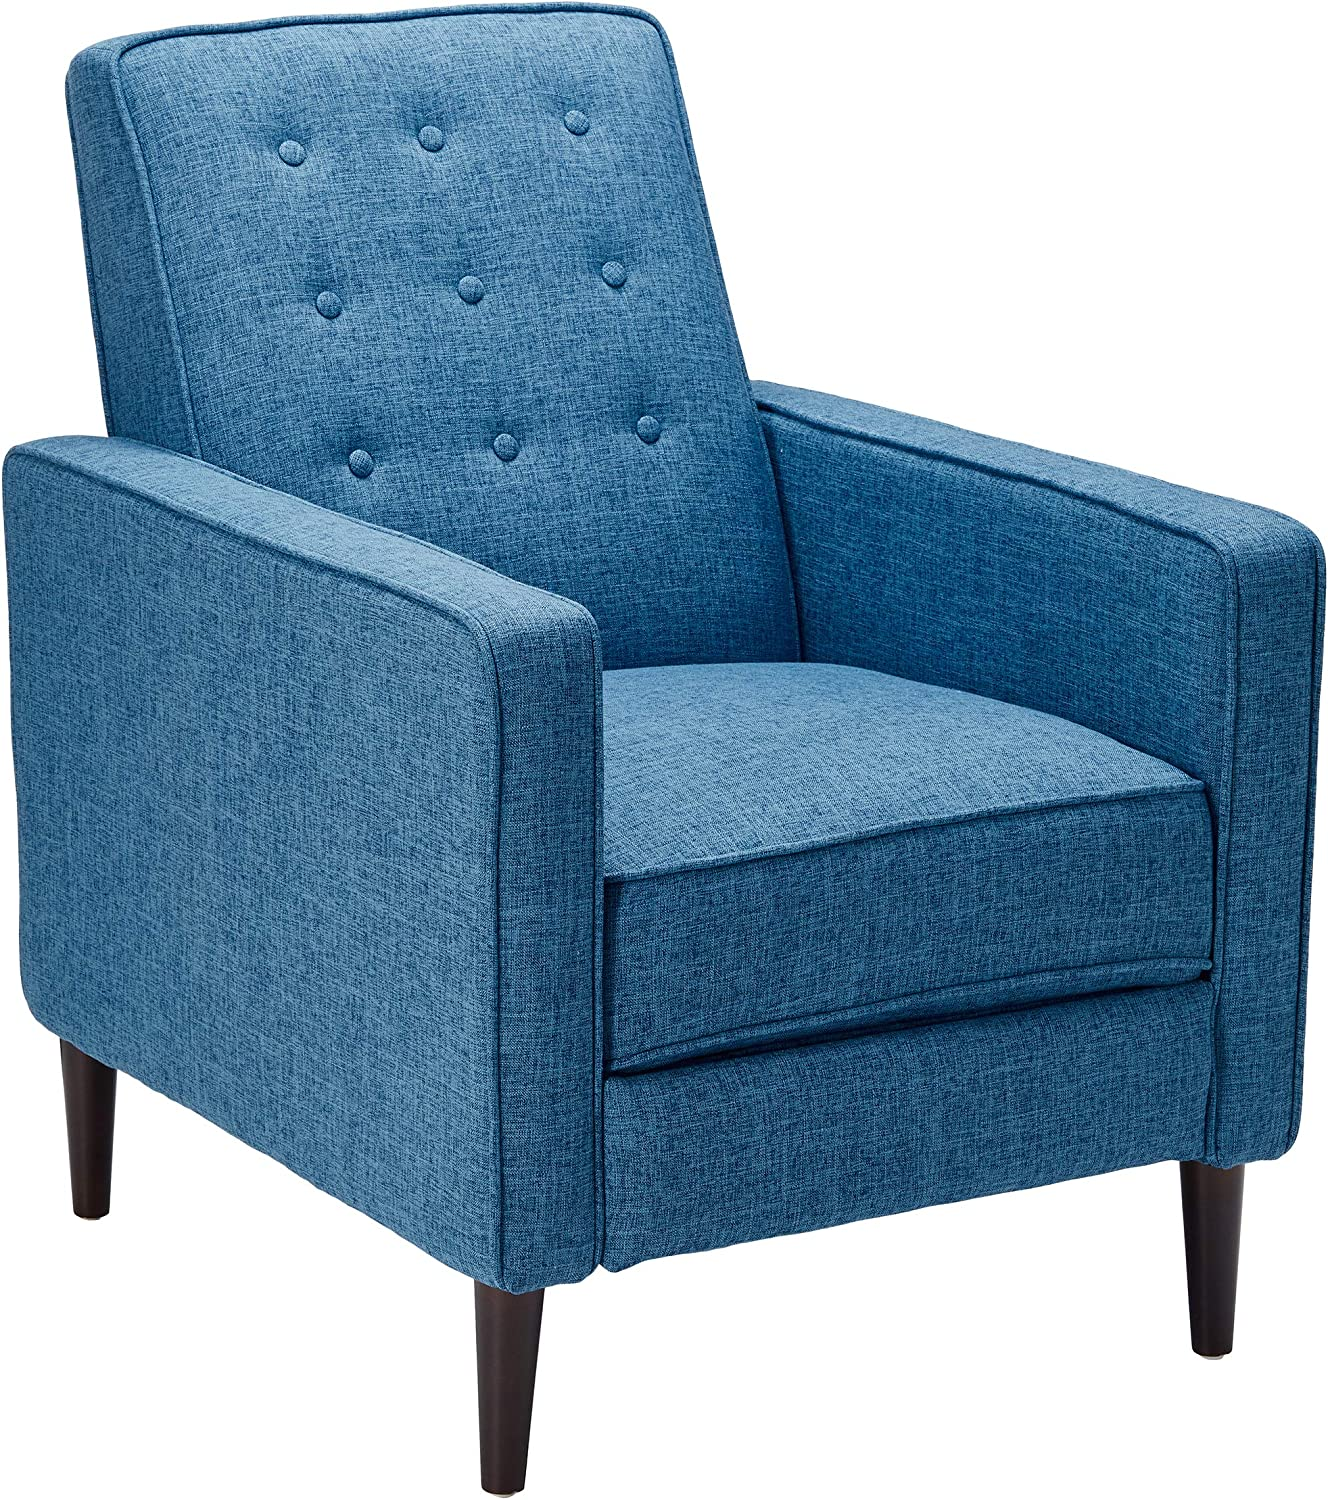 Christopher Knight Home Macedonia Mid Century Modern Tufted Back Muted Blue Fabric Recliner, Single